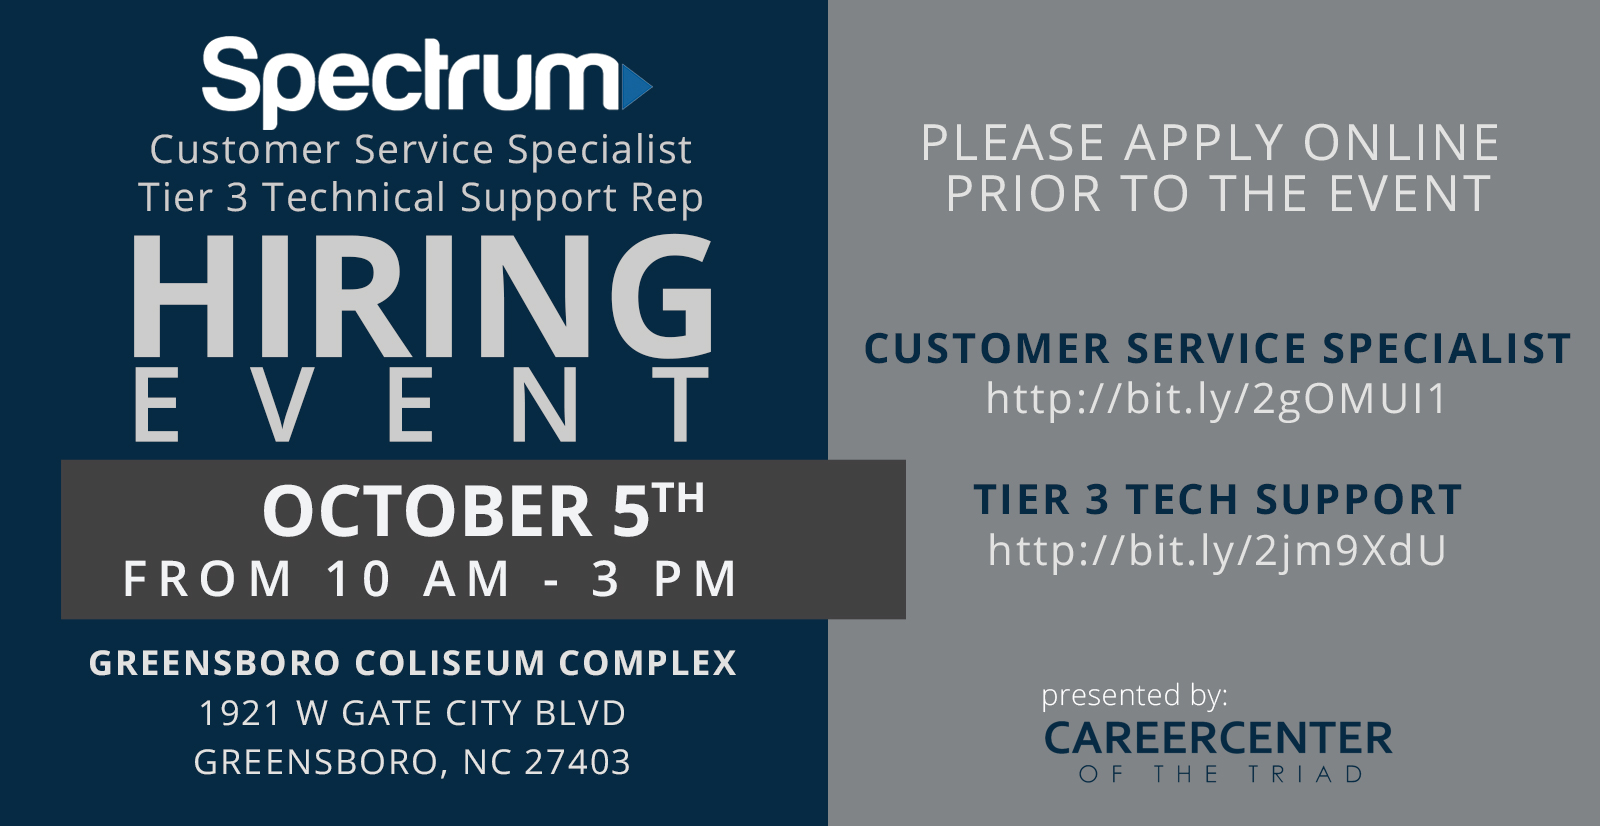 spectrum holding job fair for over 100 positions in greensboro october 5 fb ad 1507052090163 11297529 ver1 480494045 online advertising specialist were